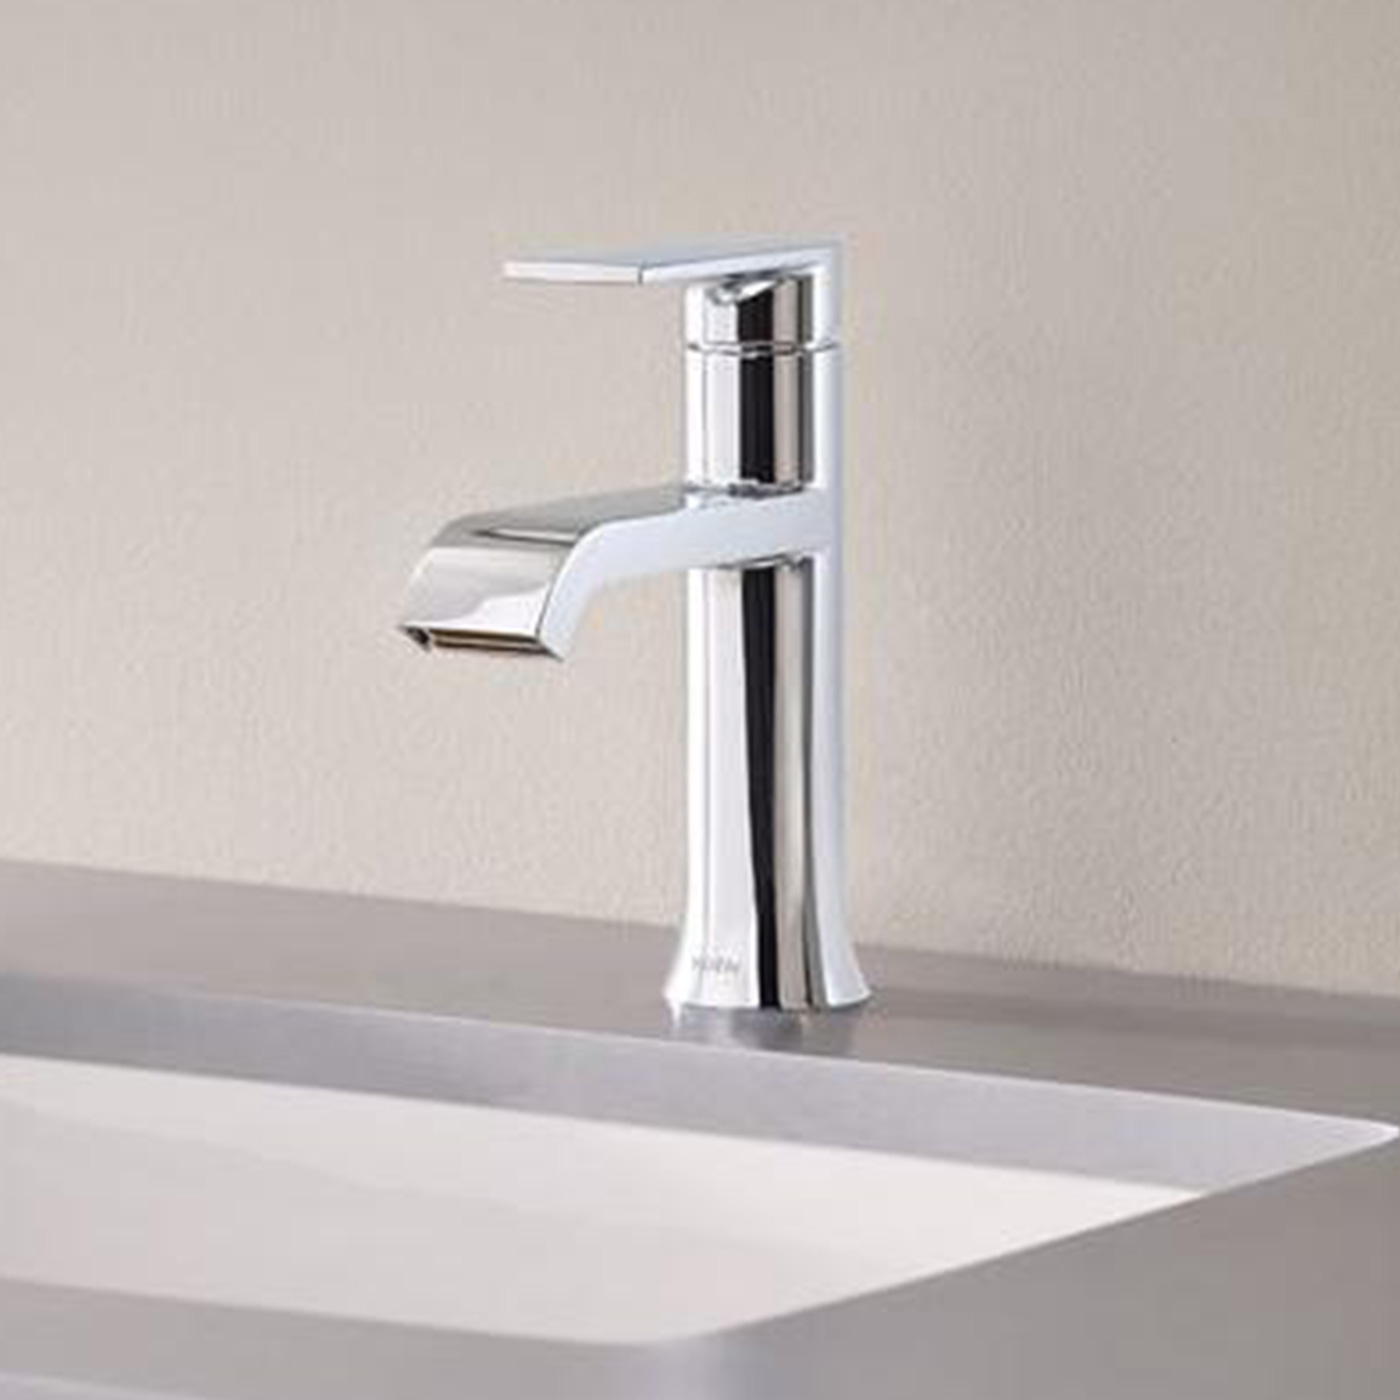 Bath Fixtures Bathroom Faucets For Your Sink Shower Head And Bathtub The Home